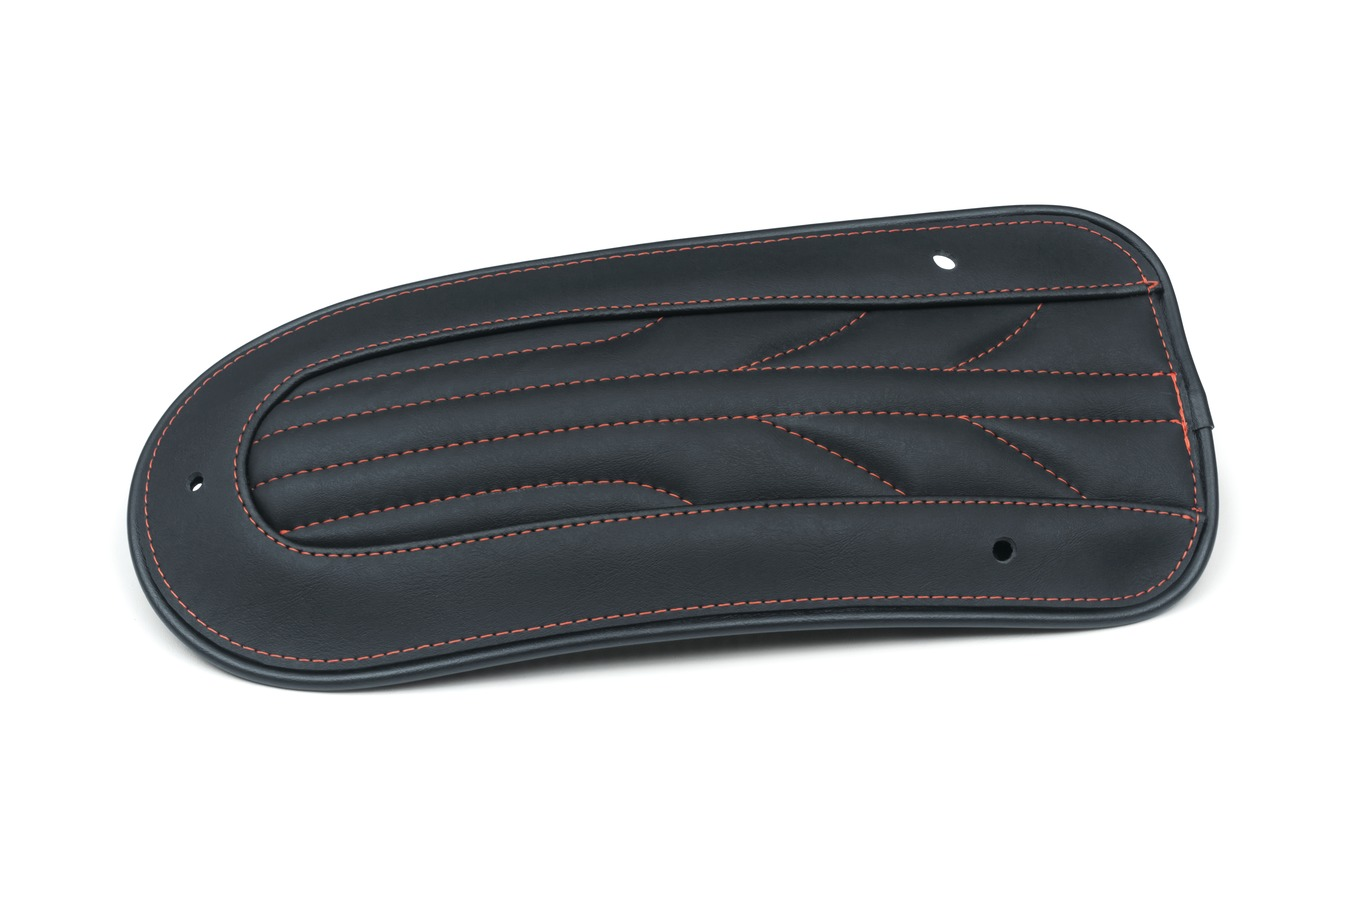 Revere Journey Gravity Fender Bib with American Beauty Red Stitching, Black